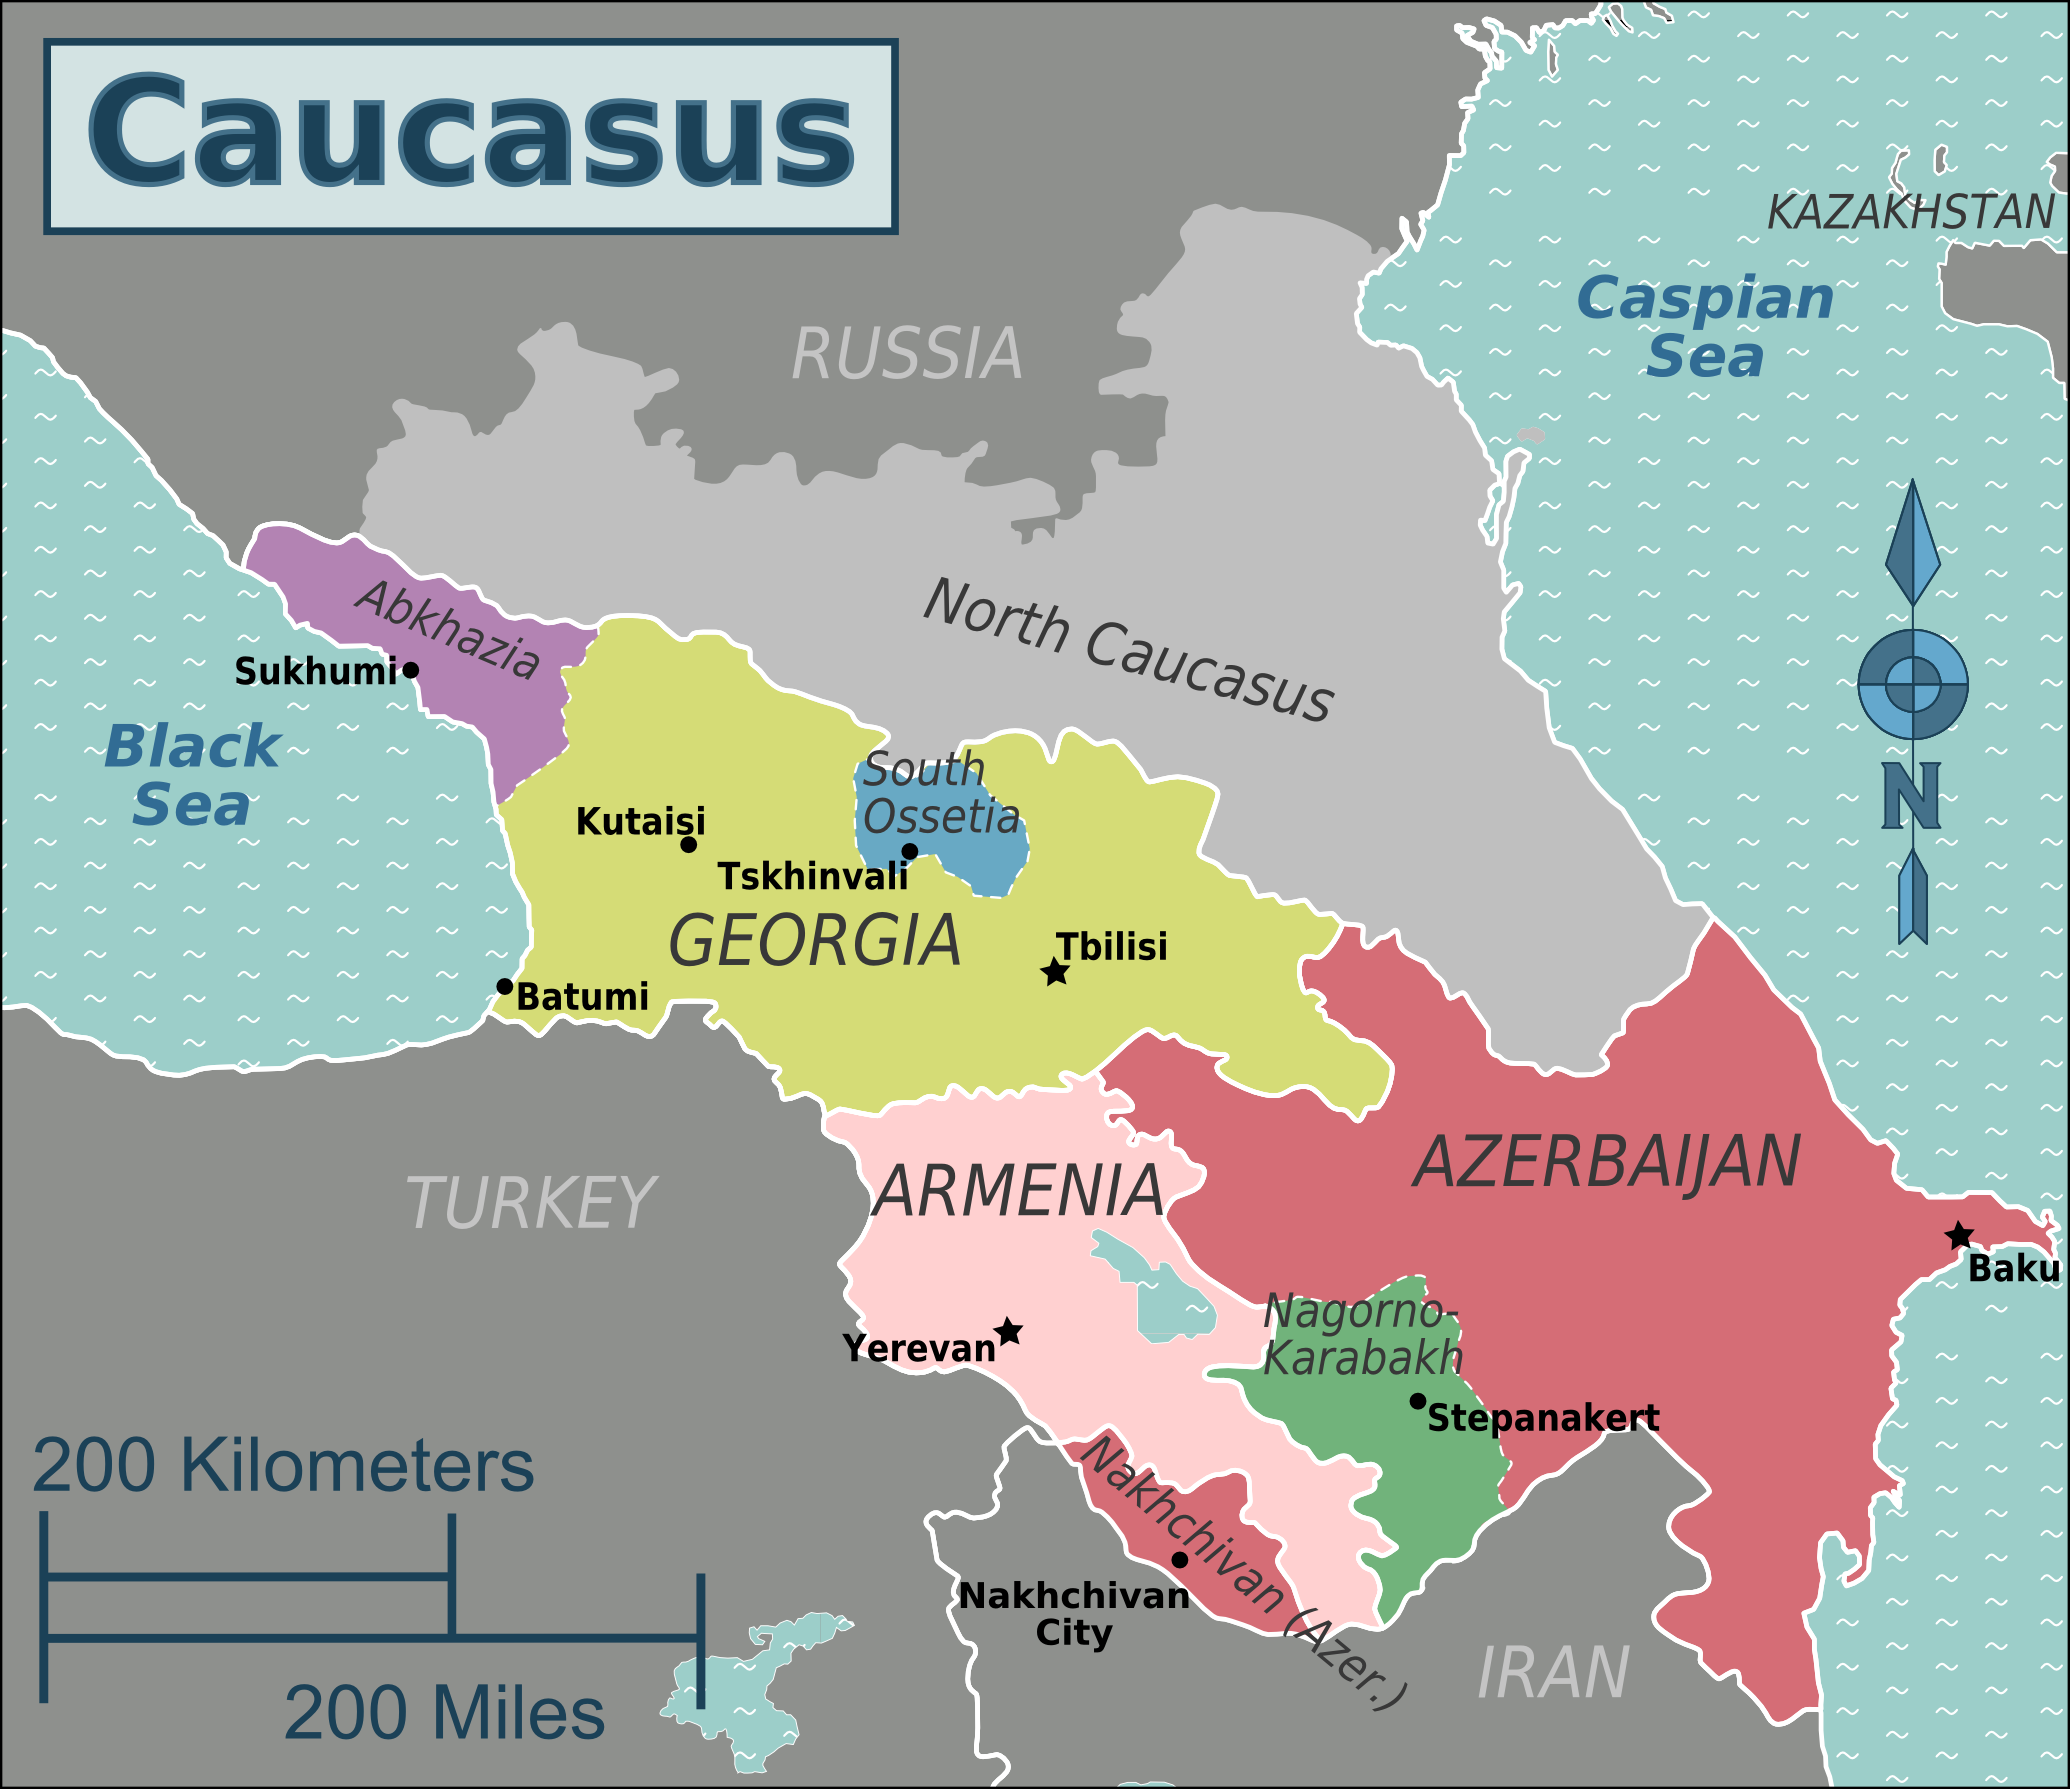 Caucasus_regions_map2